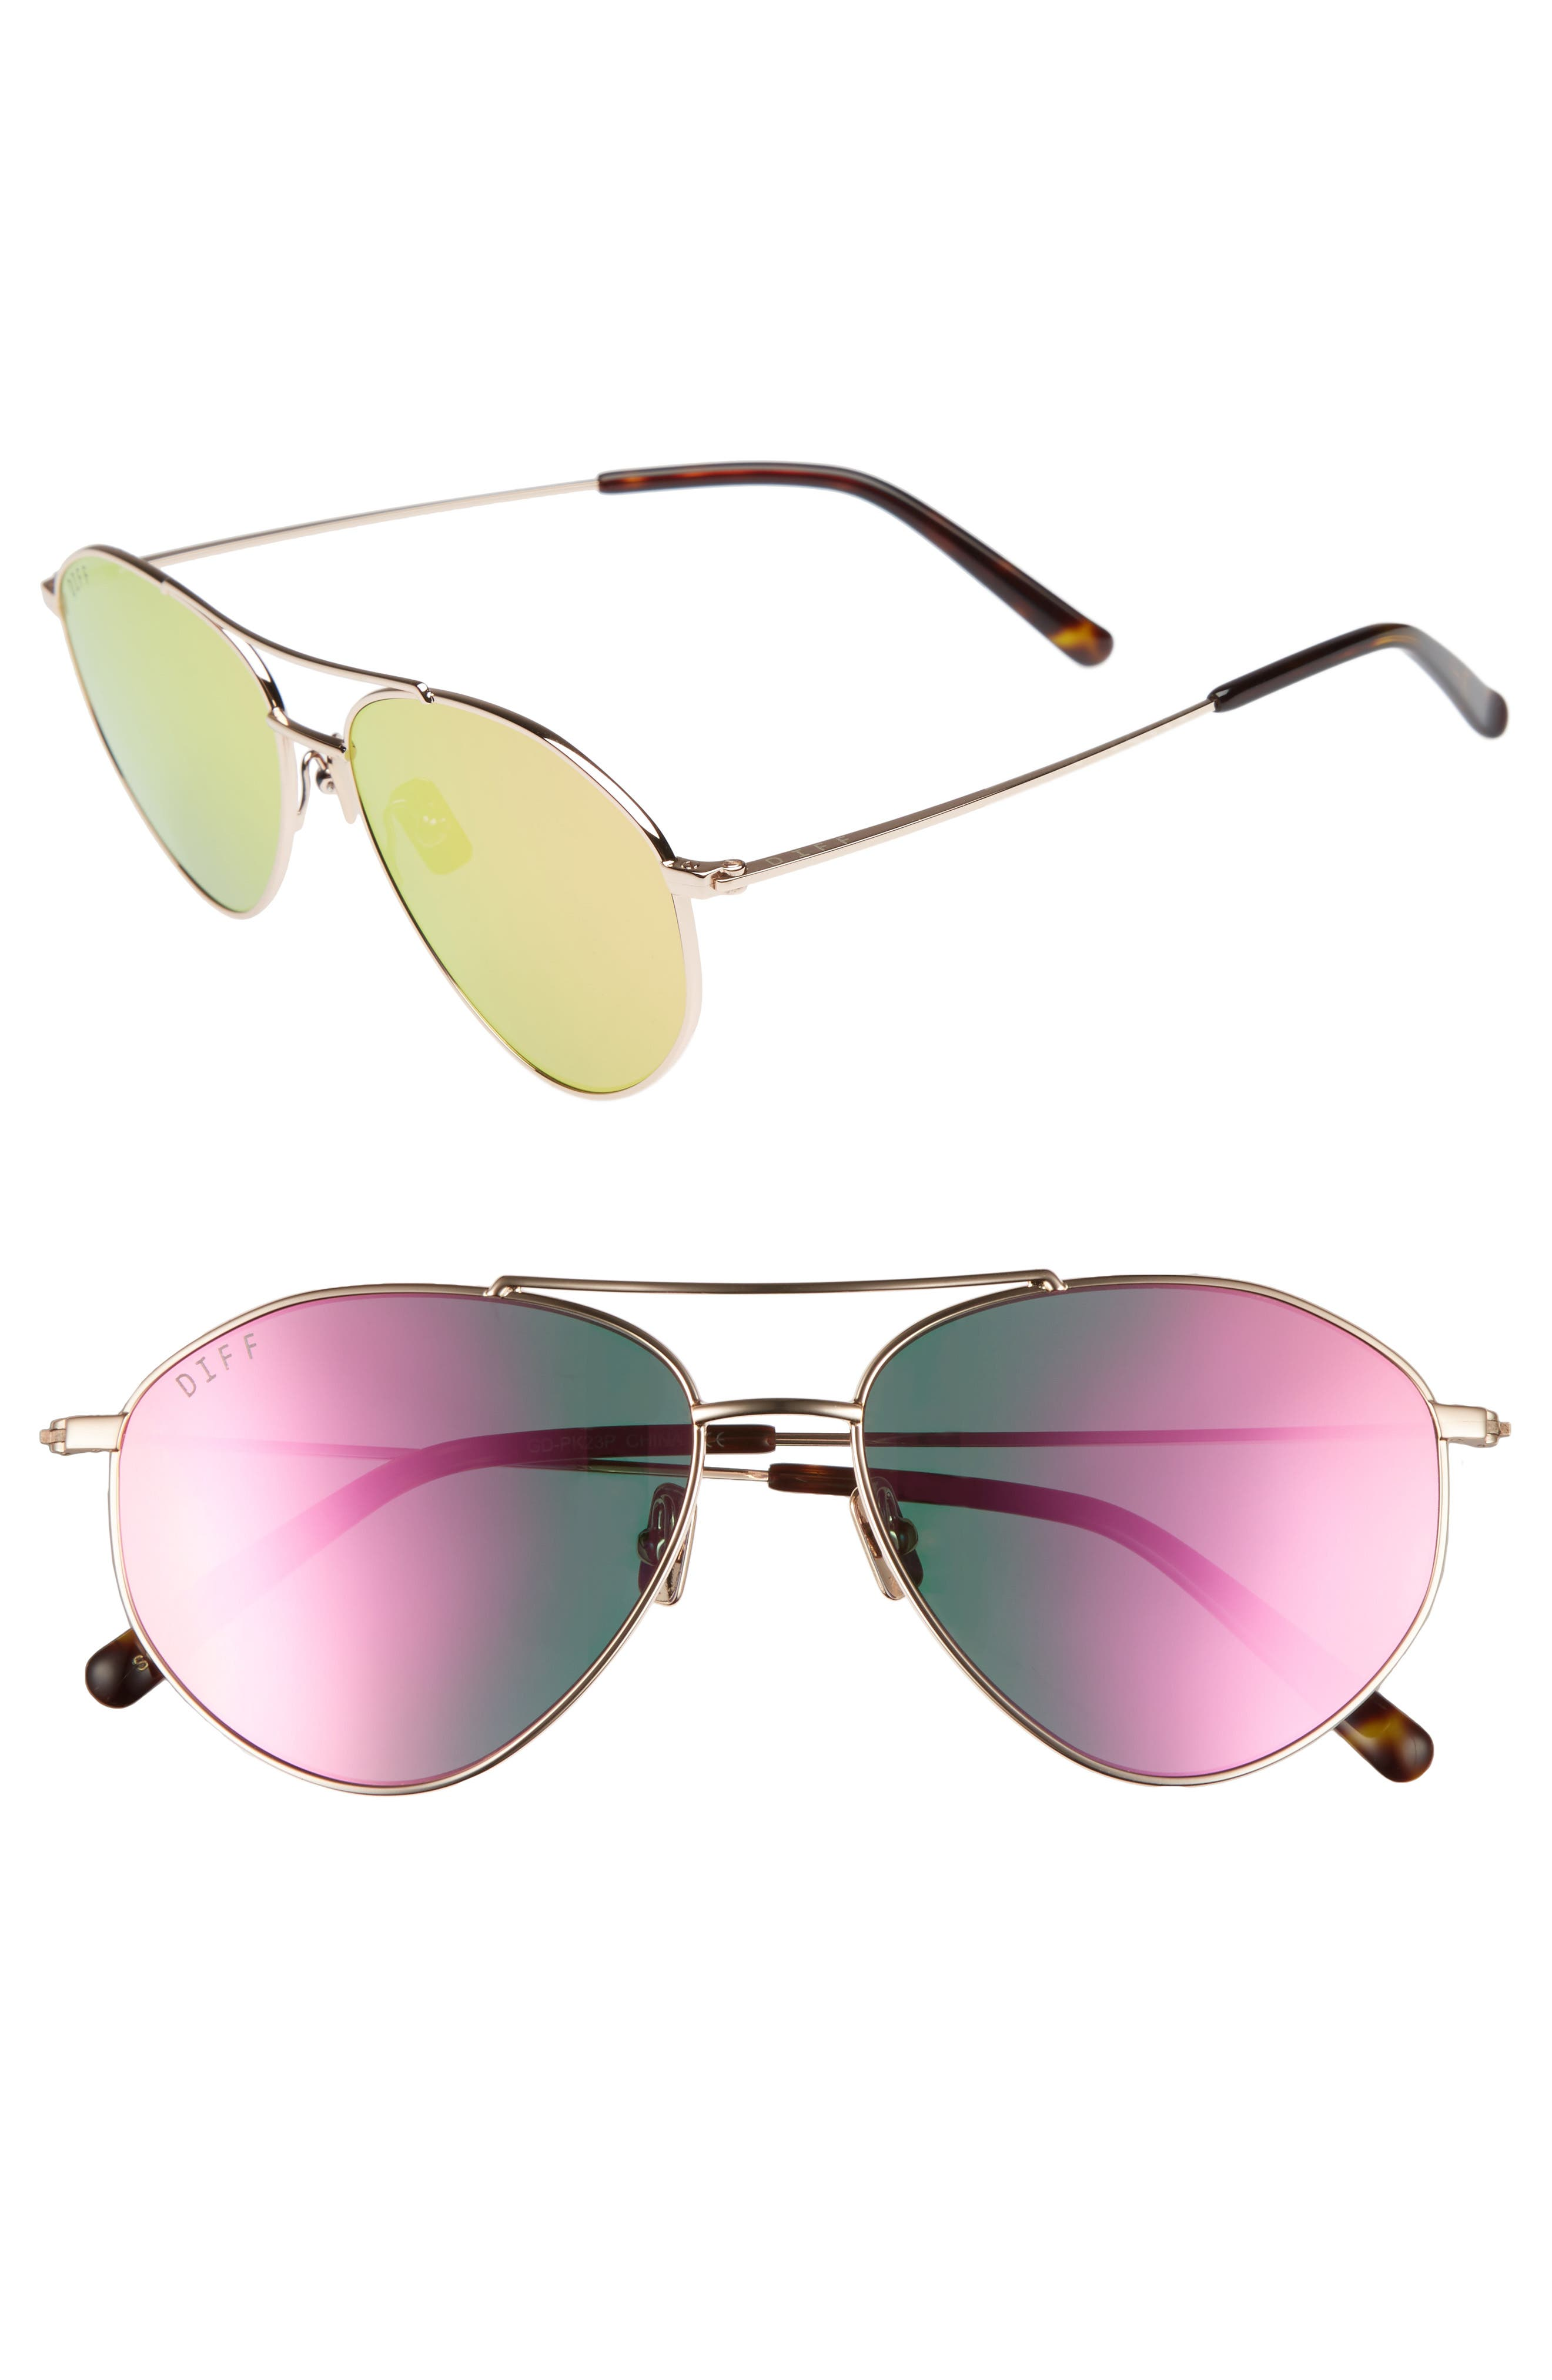 Scout 53mm Aviator Sunglasses,                         Main,                         color, Gold/ Pink